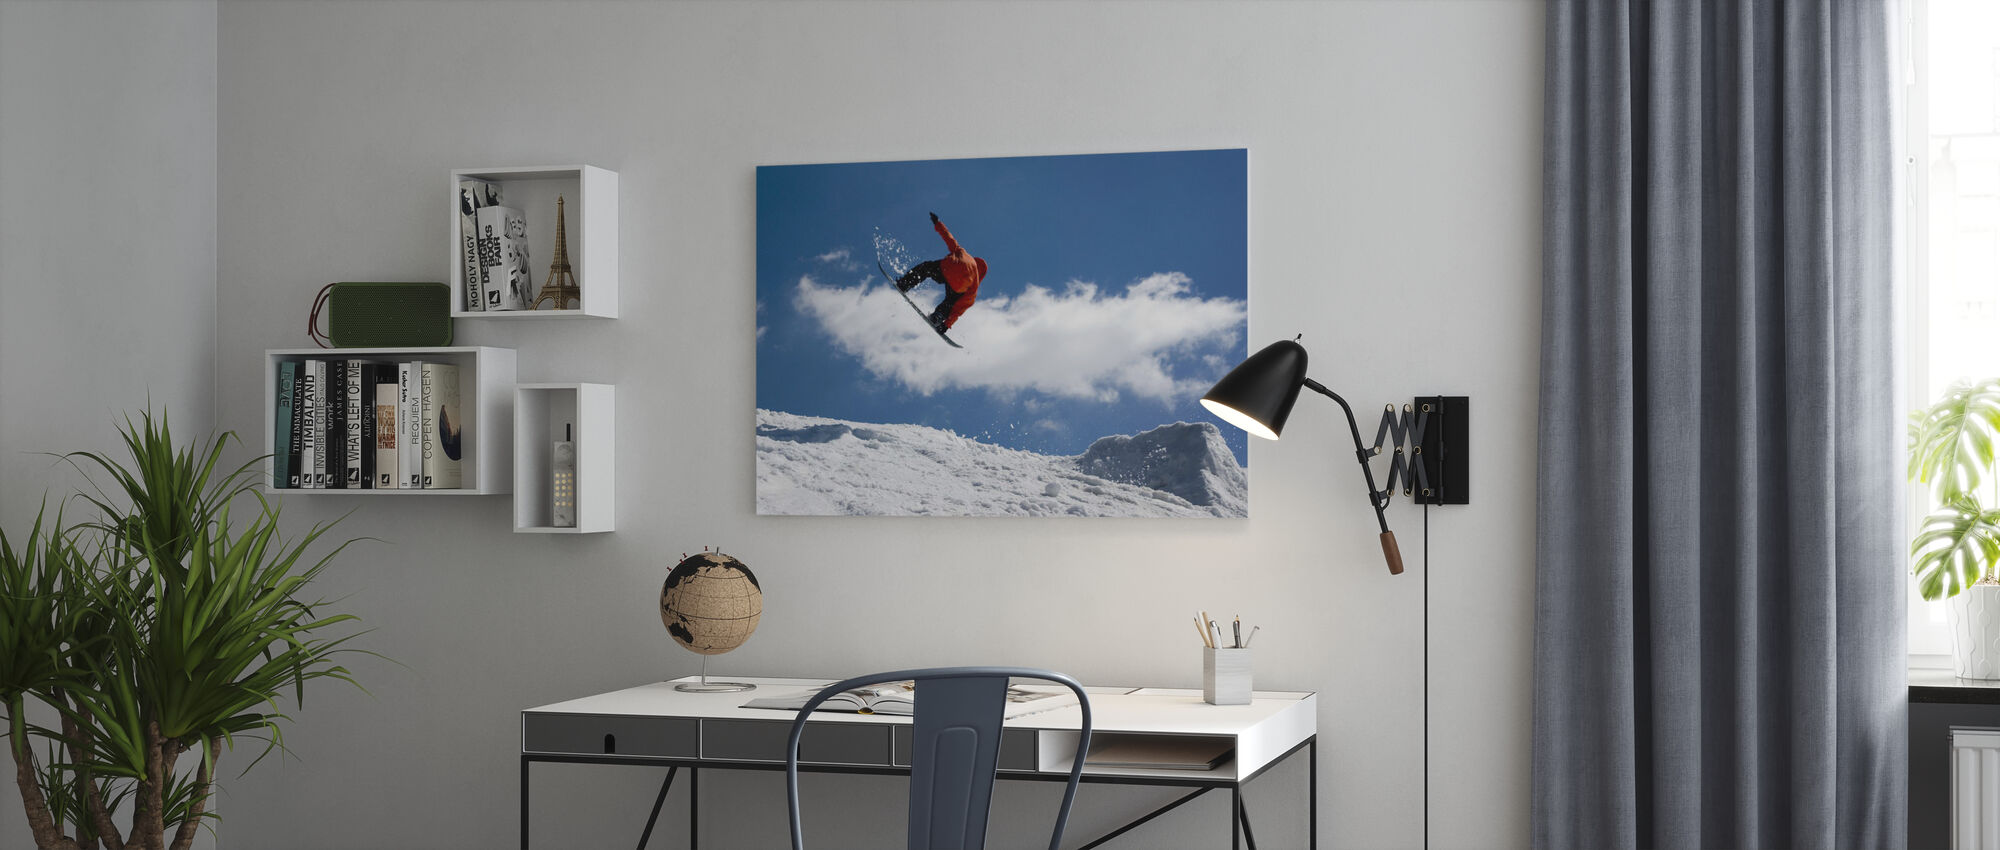 Snowboard Jump from Ramp - Canvas print - Office